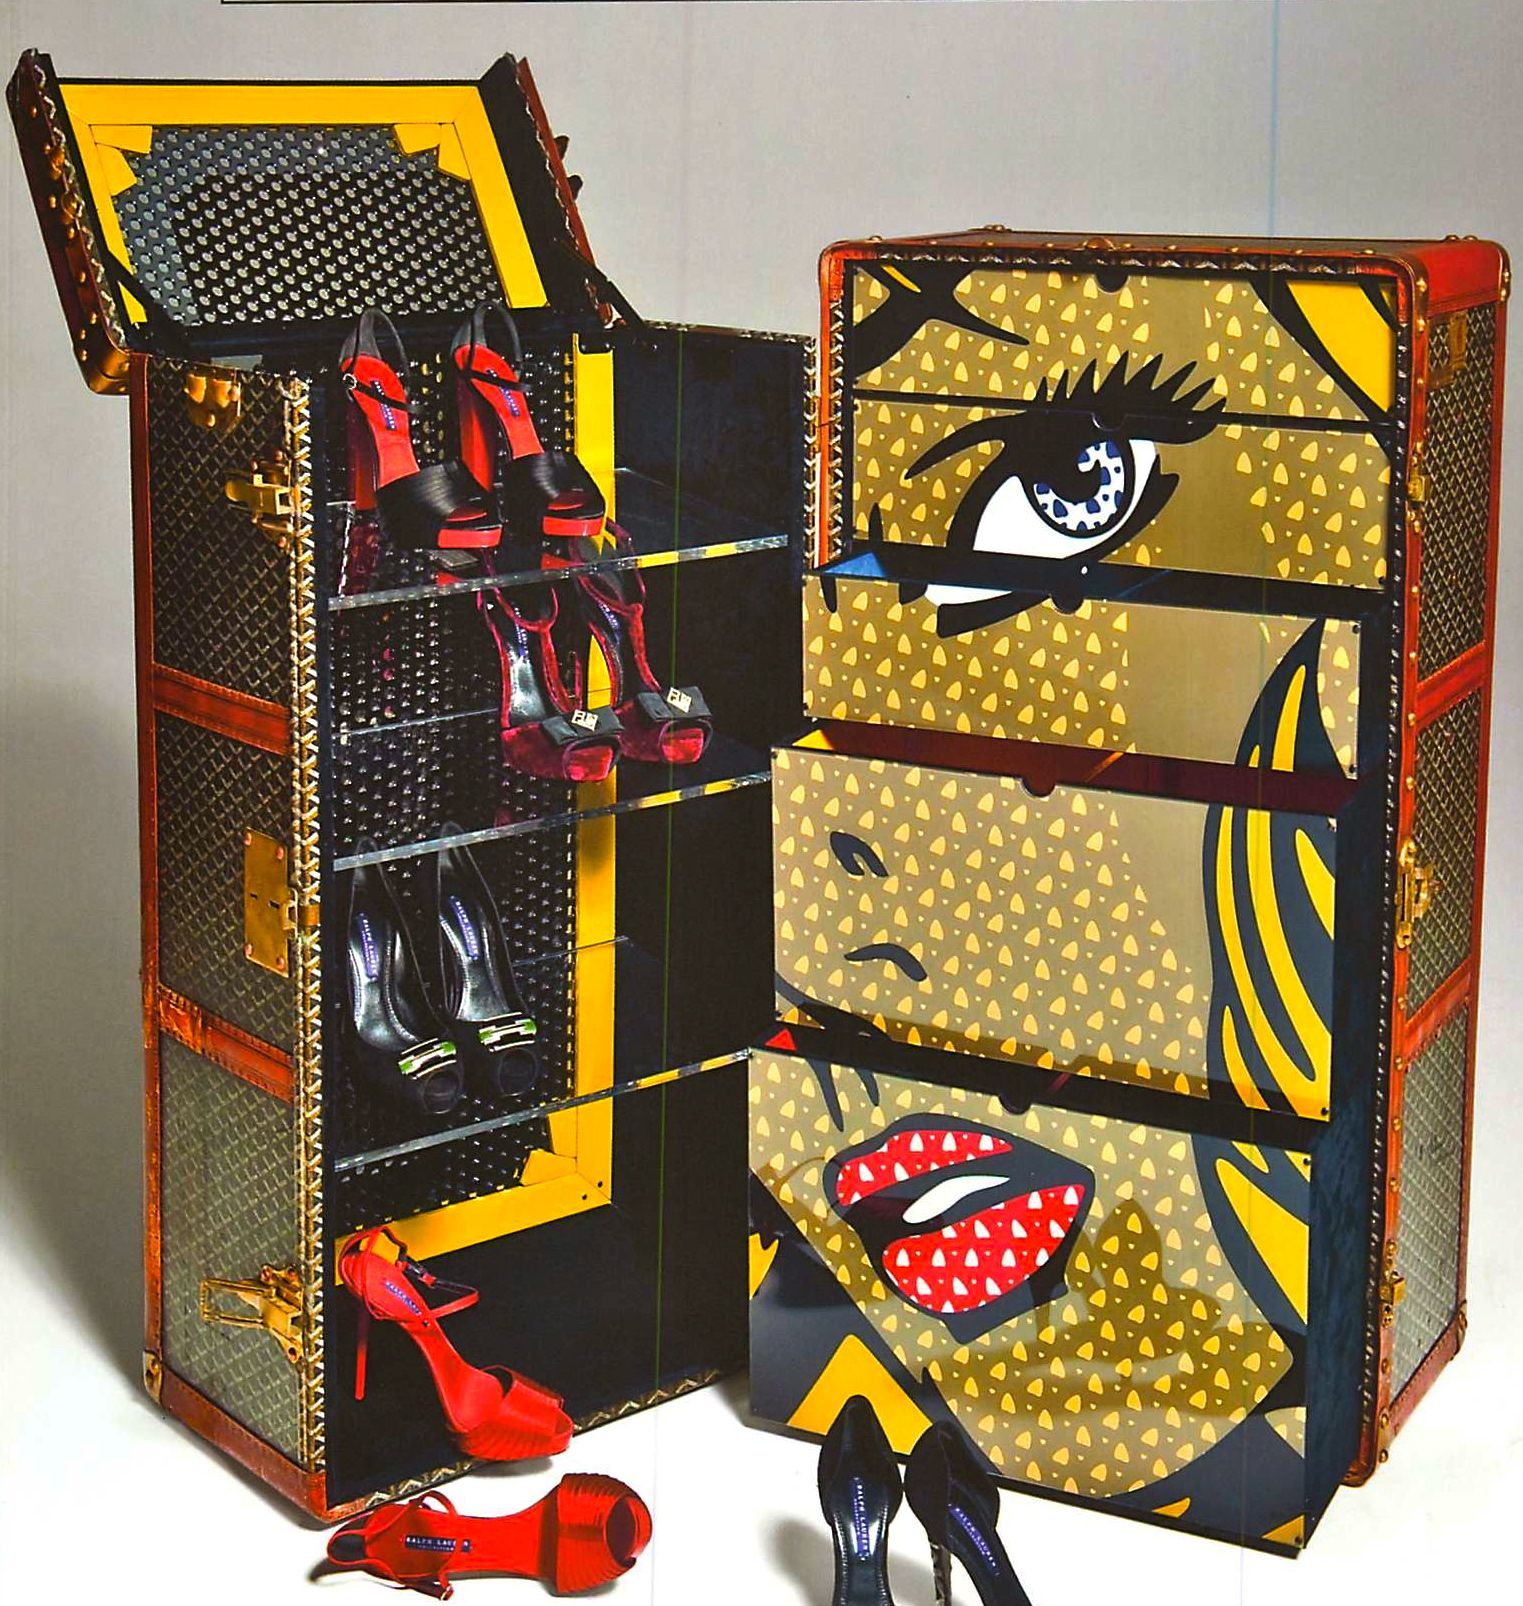 Vintage goyard trunk pop art gifts for her pinterest - Muebles pop art ...